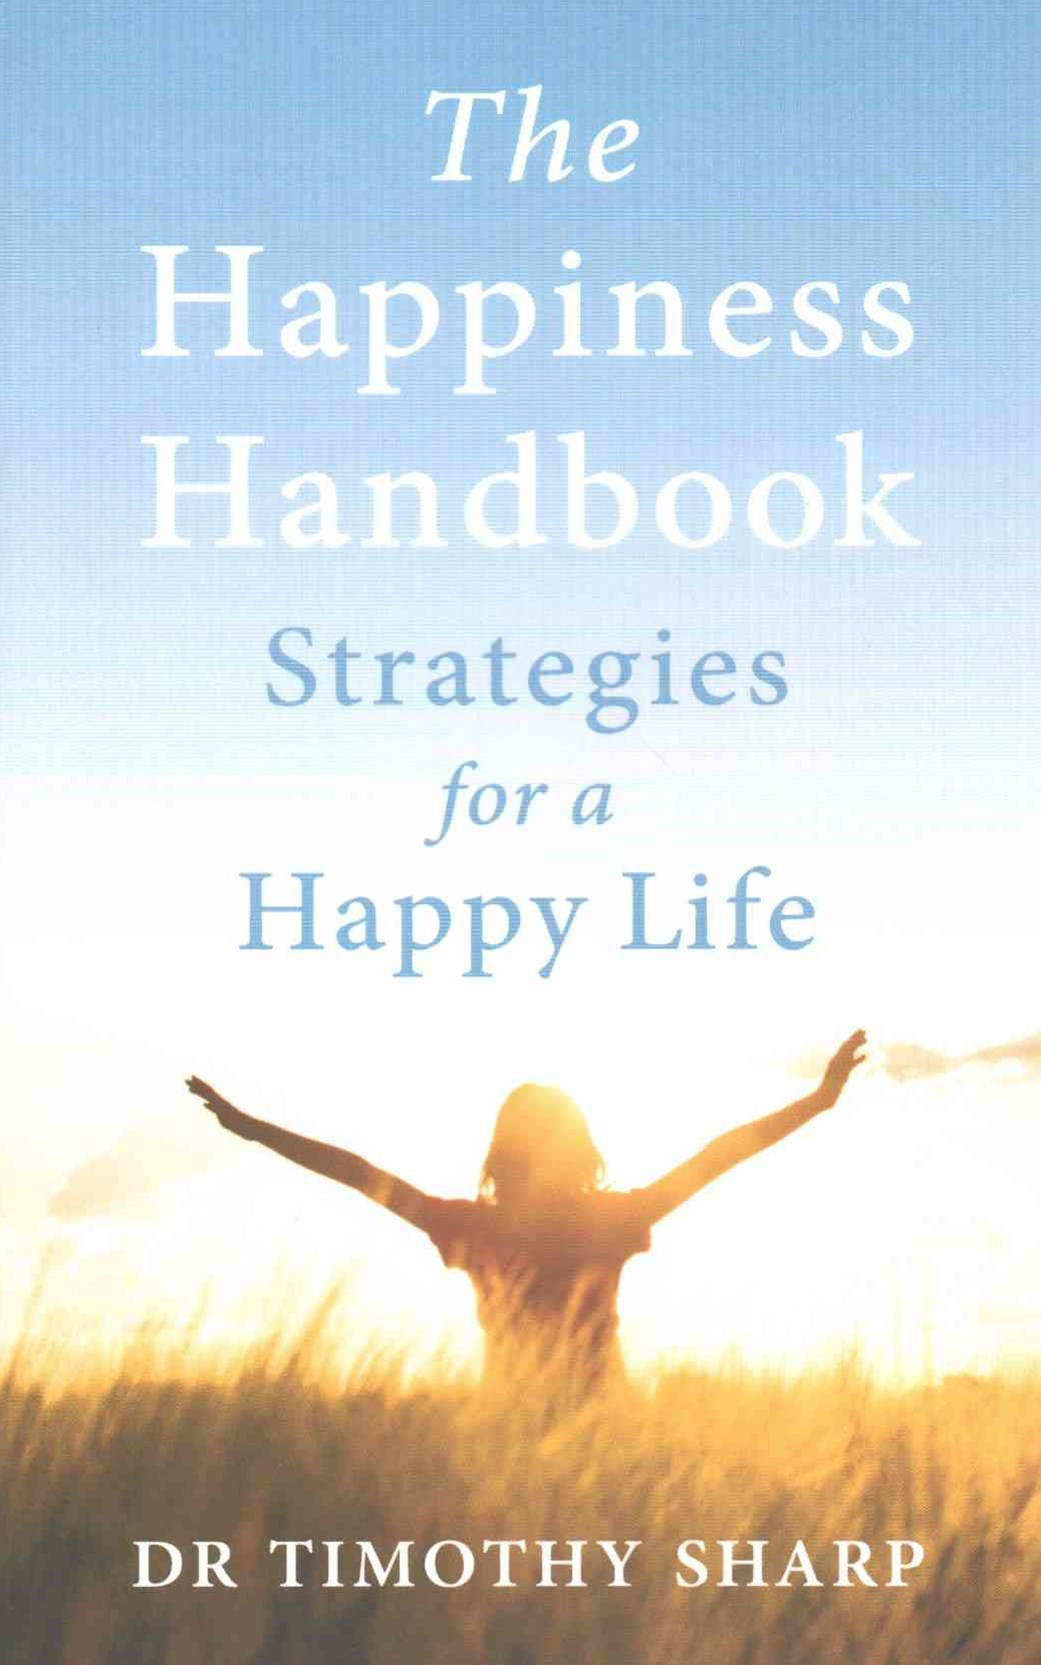 The Happiness Handbook: Strategies for a Happy Life [Third Edition]